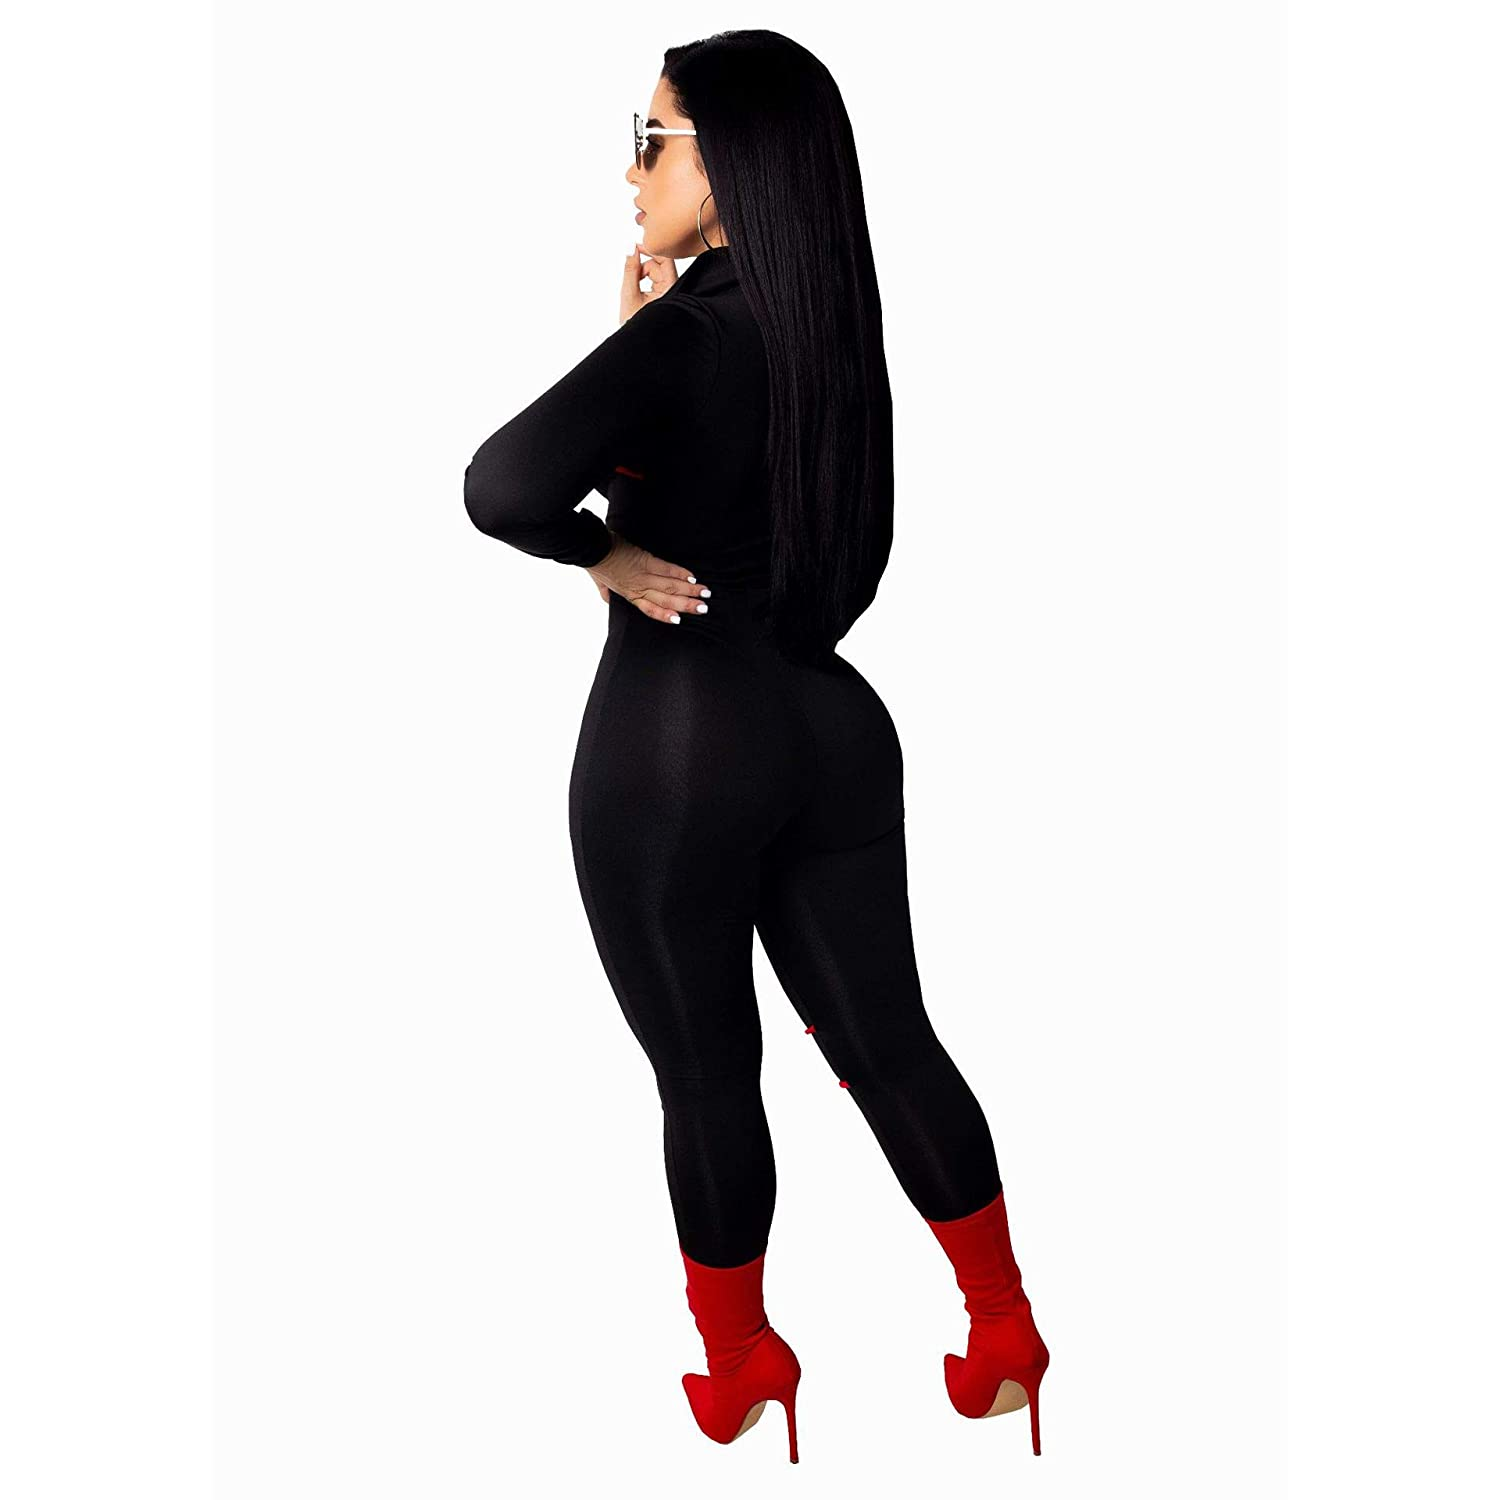 8b9a1940e751 Amazon.com  Sexy Long Sleeve Women s Rompers and Jumpsuits Clubwear Plus  Size high Waist Bodycon Pants  Clothing